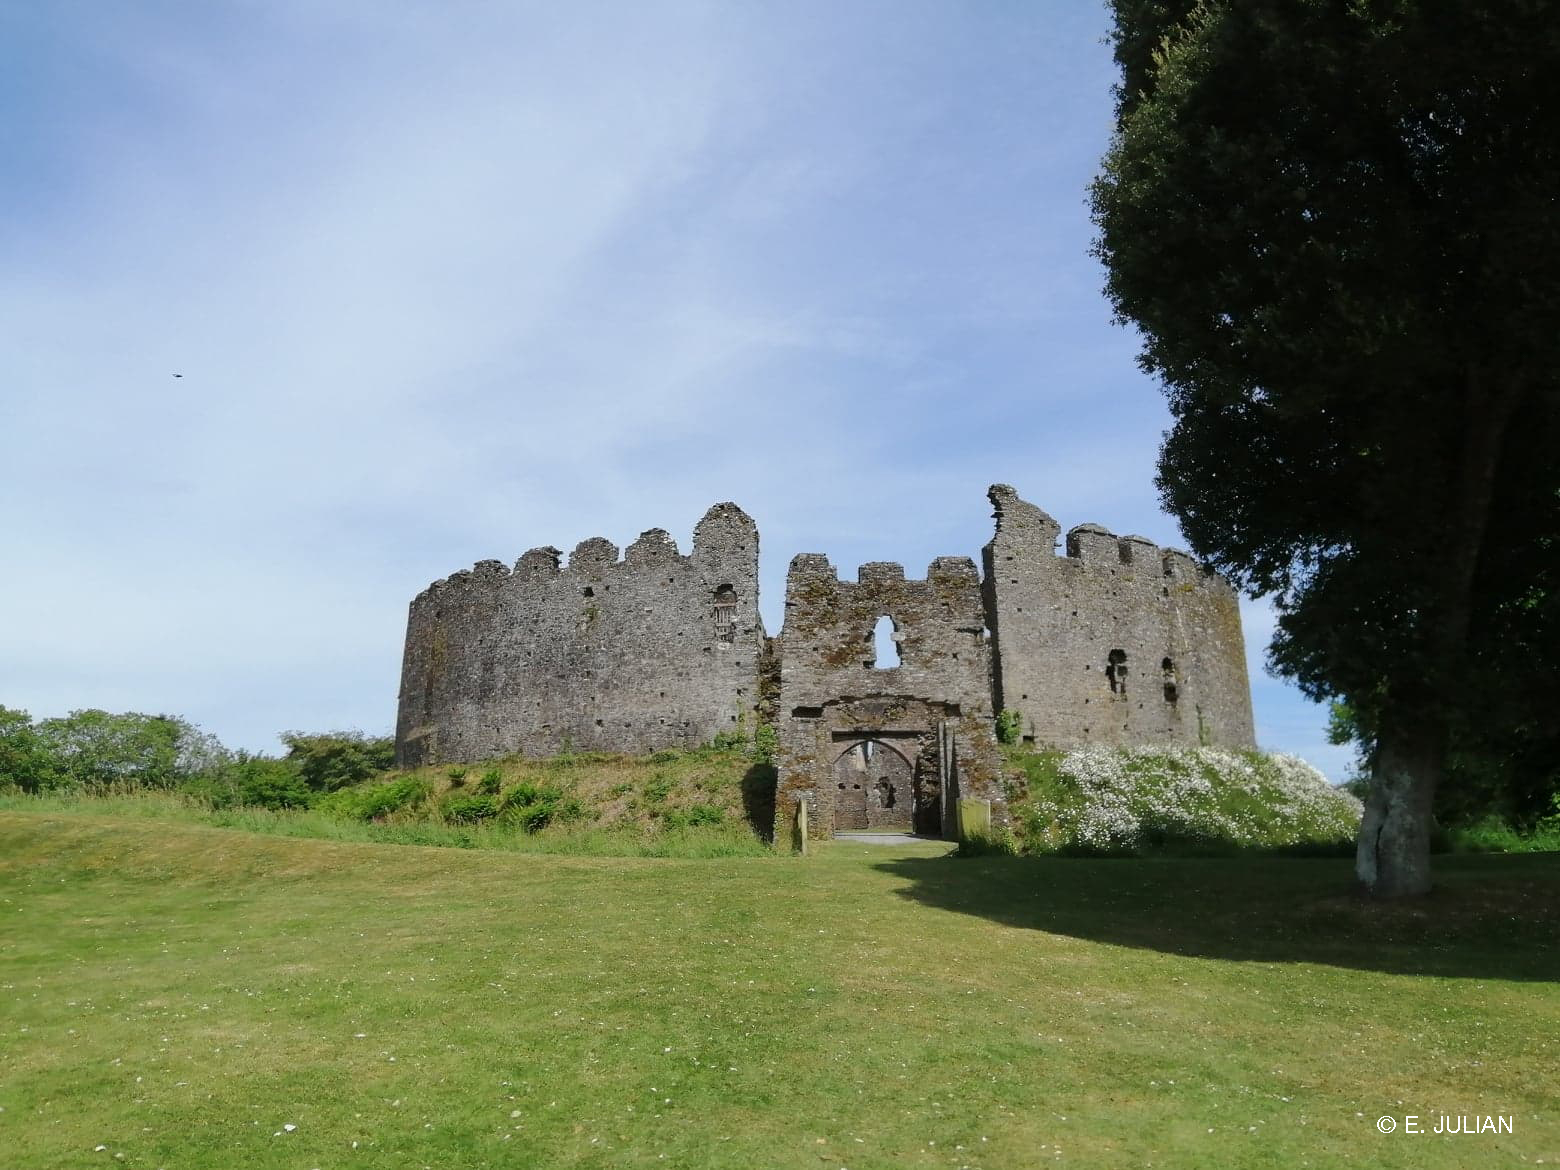 The entrance to Restormel Castle, Cornwall